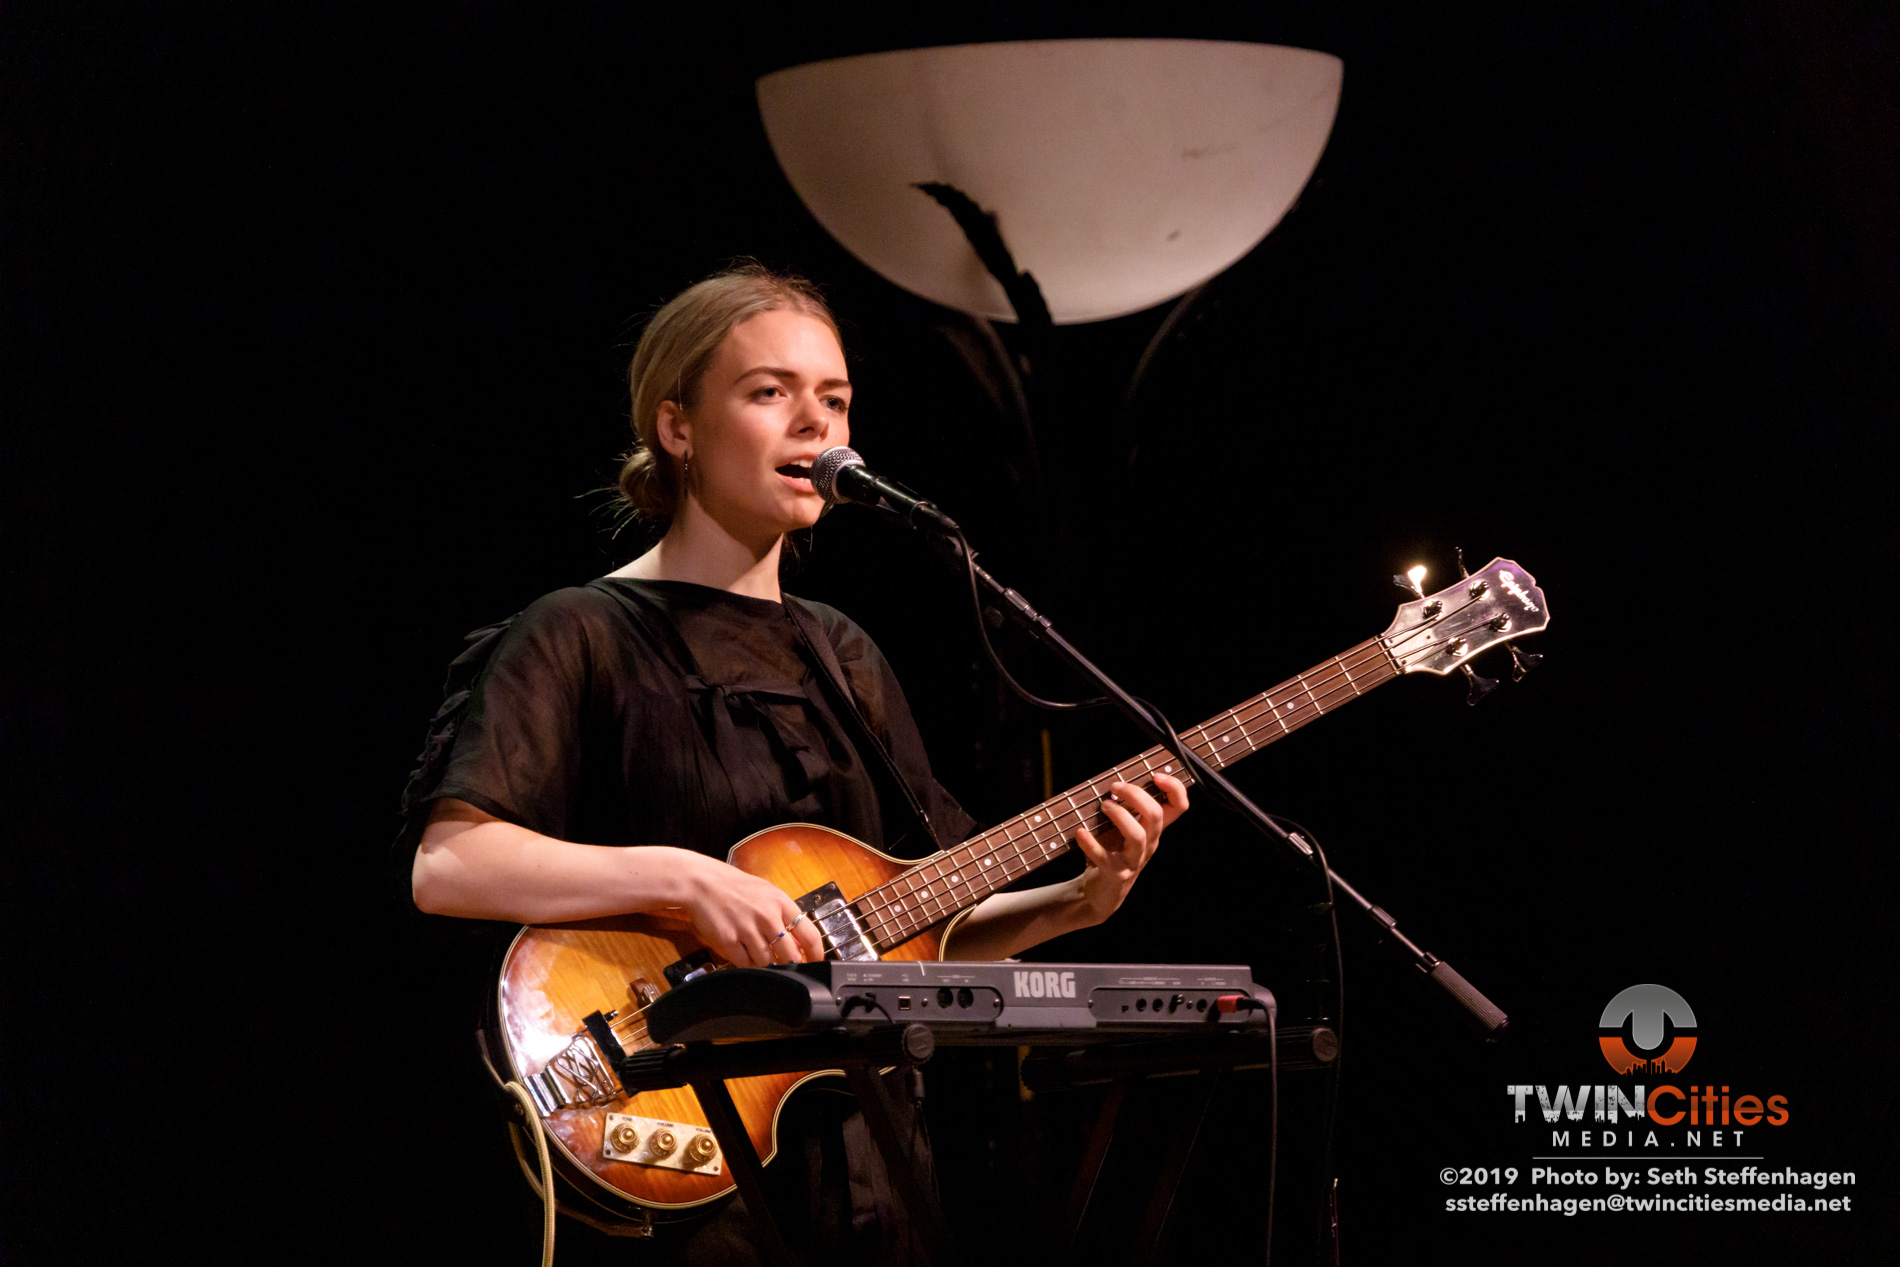 November 15, 2019 - Minneapolis, Minnesota, United States - Jesca Hoop live in concert at The Cedar Cultural Center along with Chloe Foy as the opener.(Photo by Seth Steffenhagen/Steffenhagen Photography)